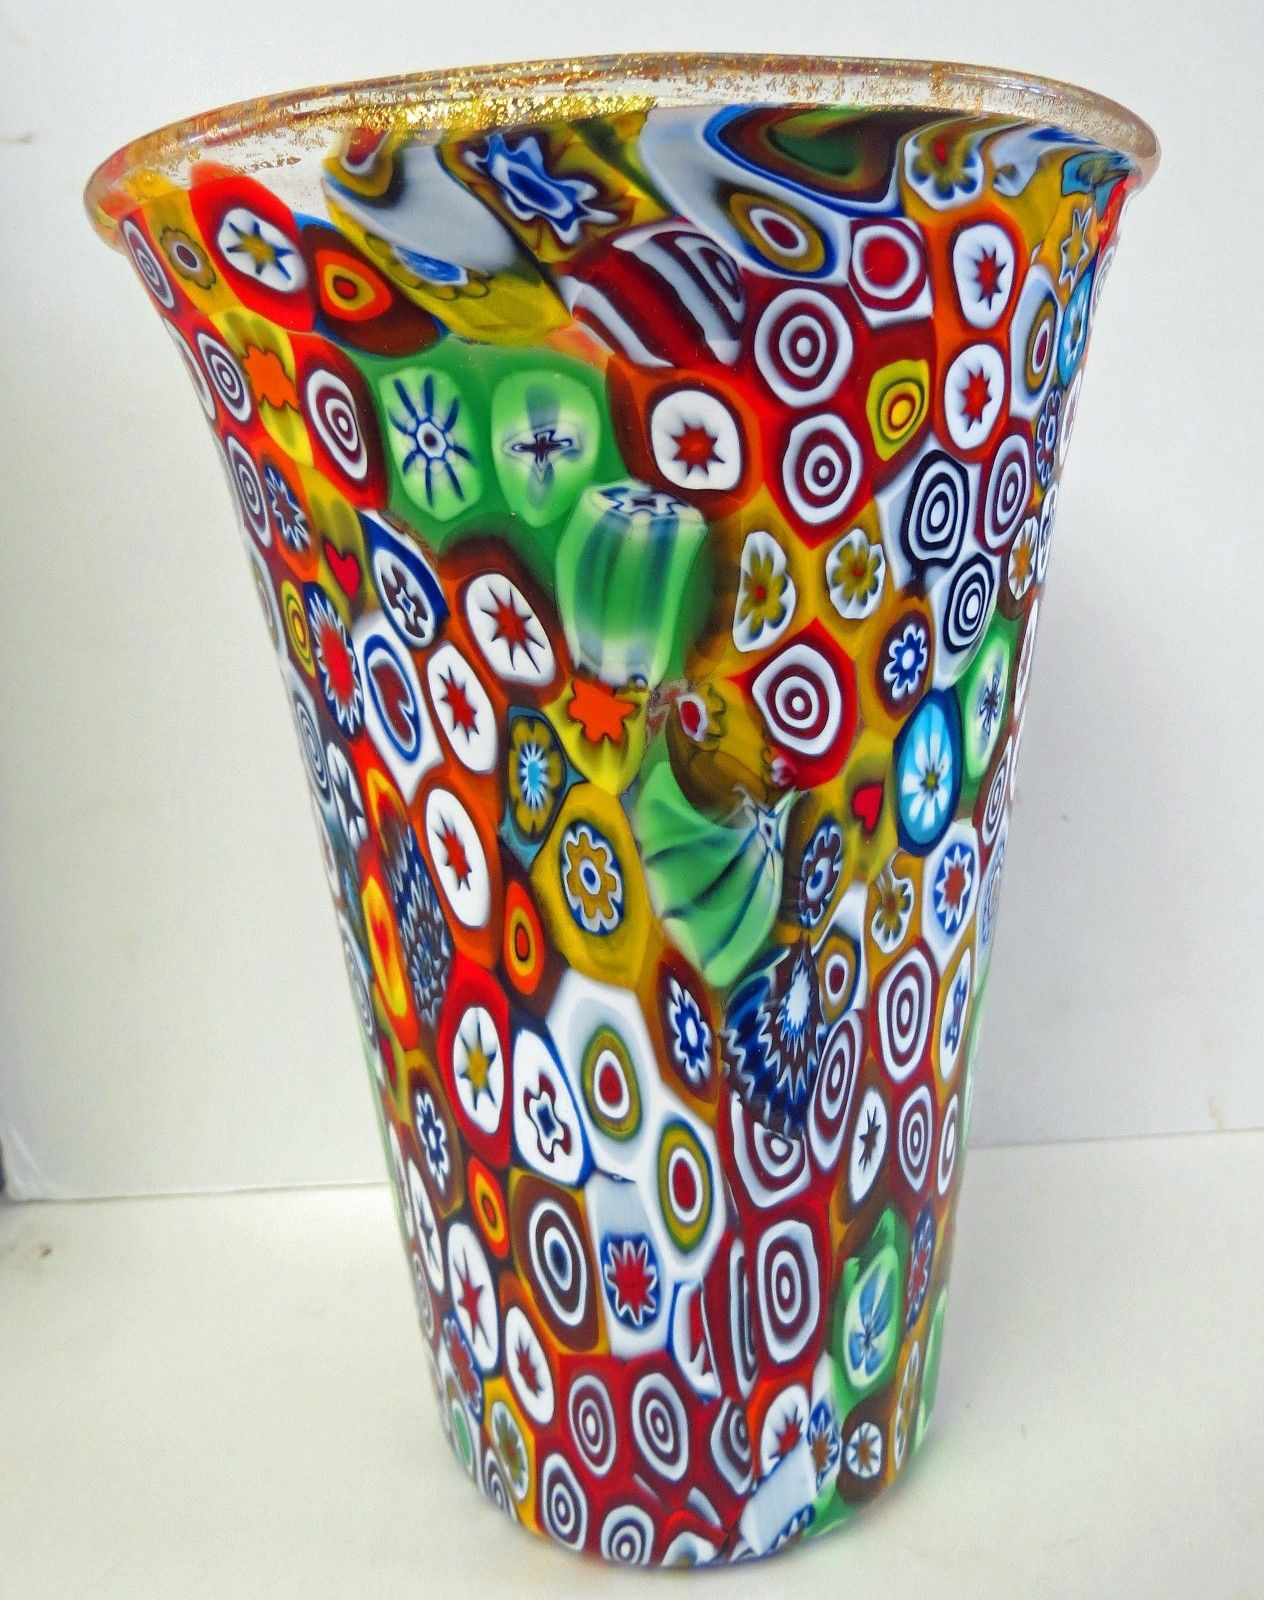 murano glass vase amazon of murano art glass large gambaro poggi millefiori vase 375 00 throughout 2 of 8 murano art glass large gambaro poggi millefiori vase 3 of 8 murano art glass